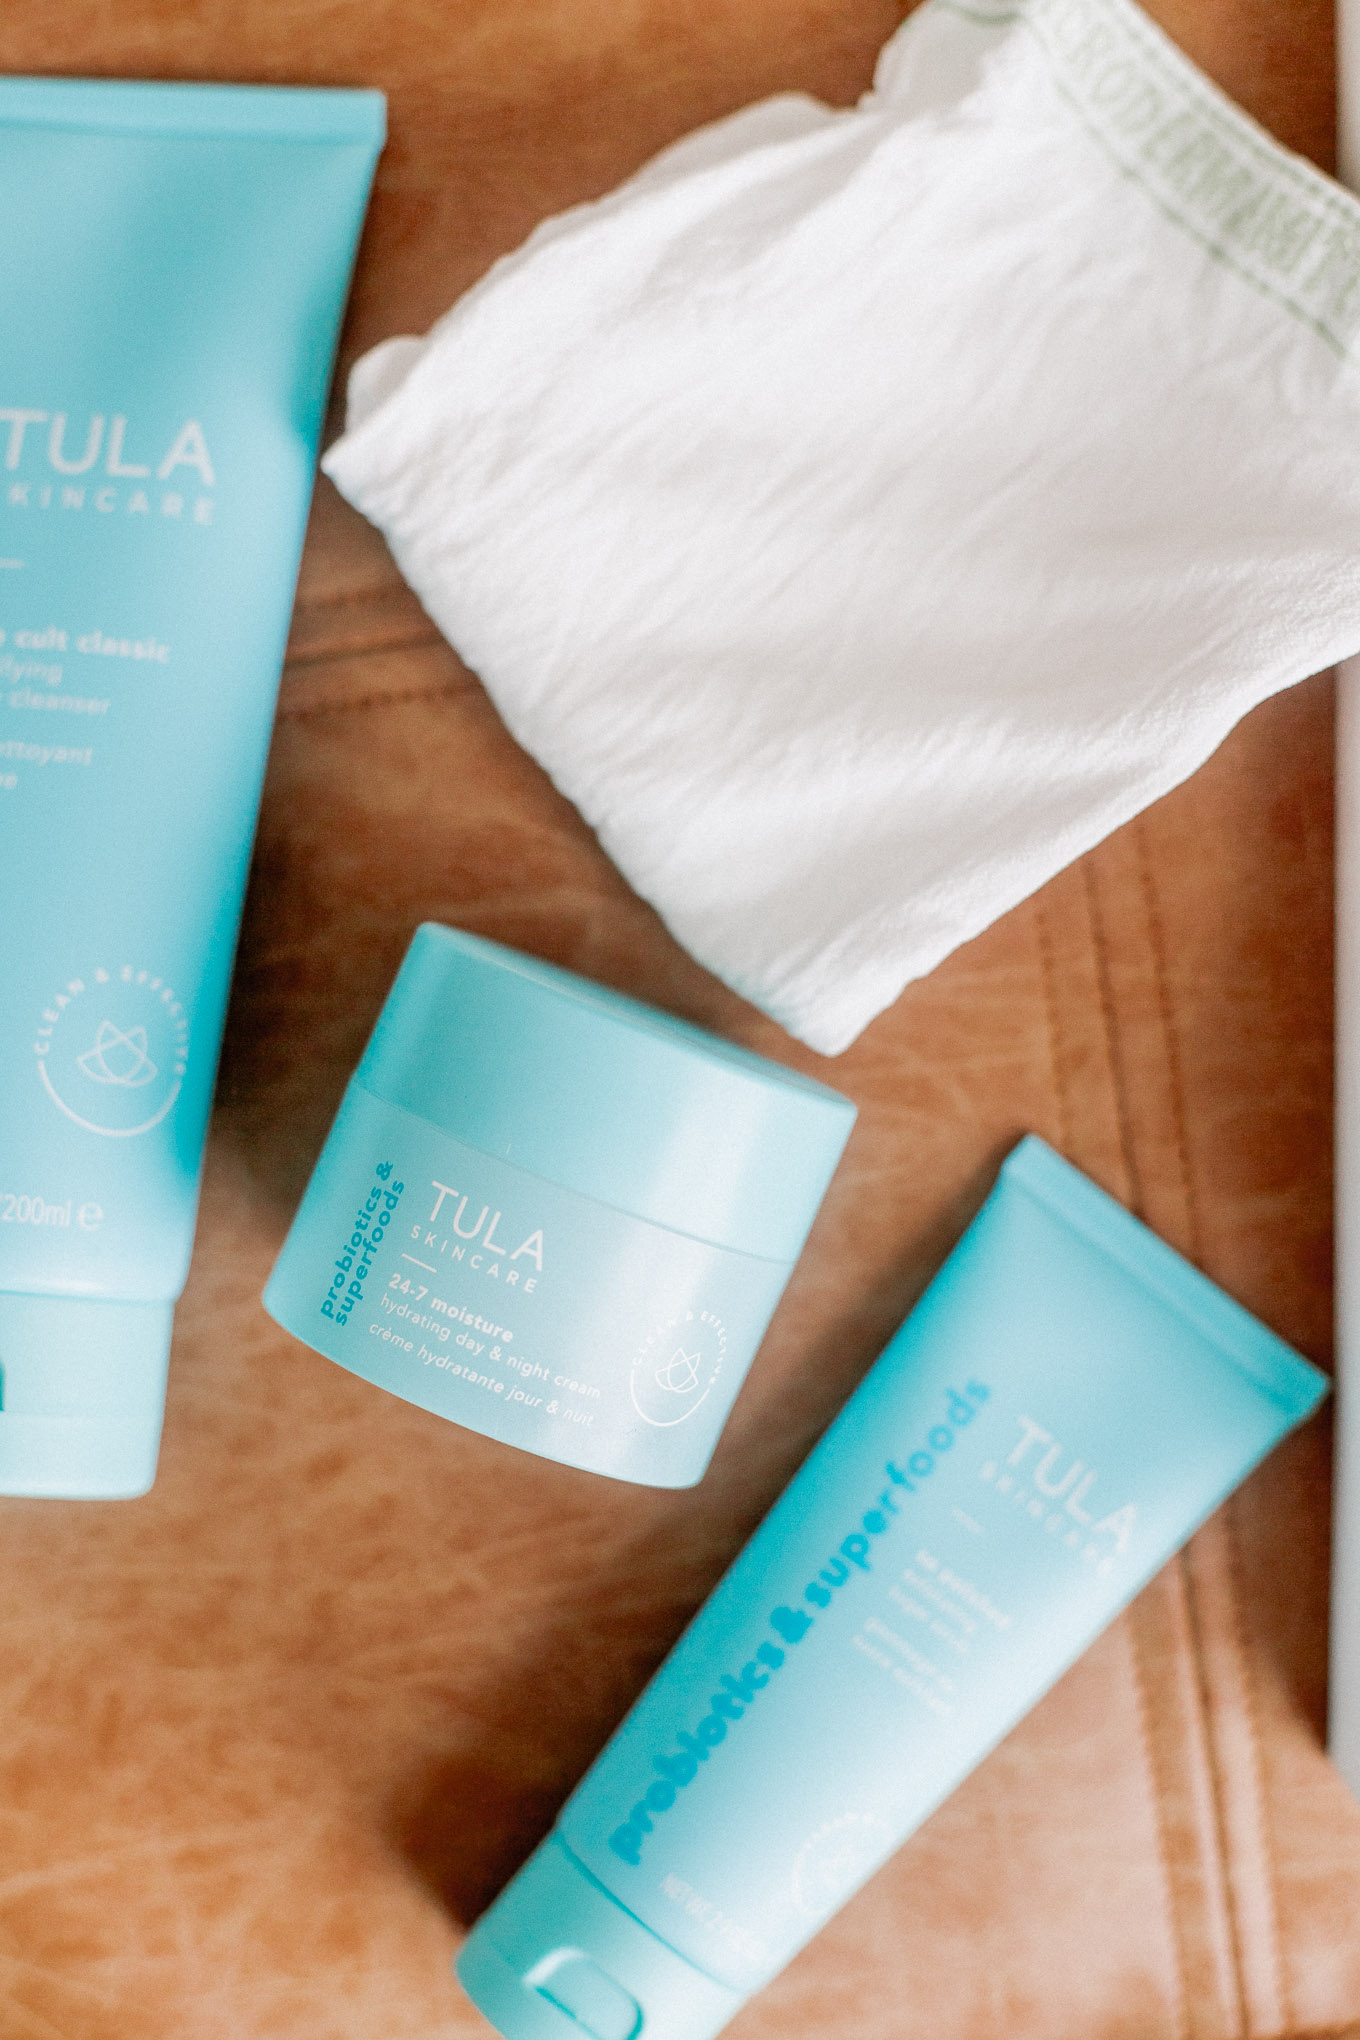 Day & Night Cream | Clean Beauty Products | TULA Review | Louella Reese